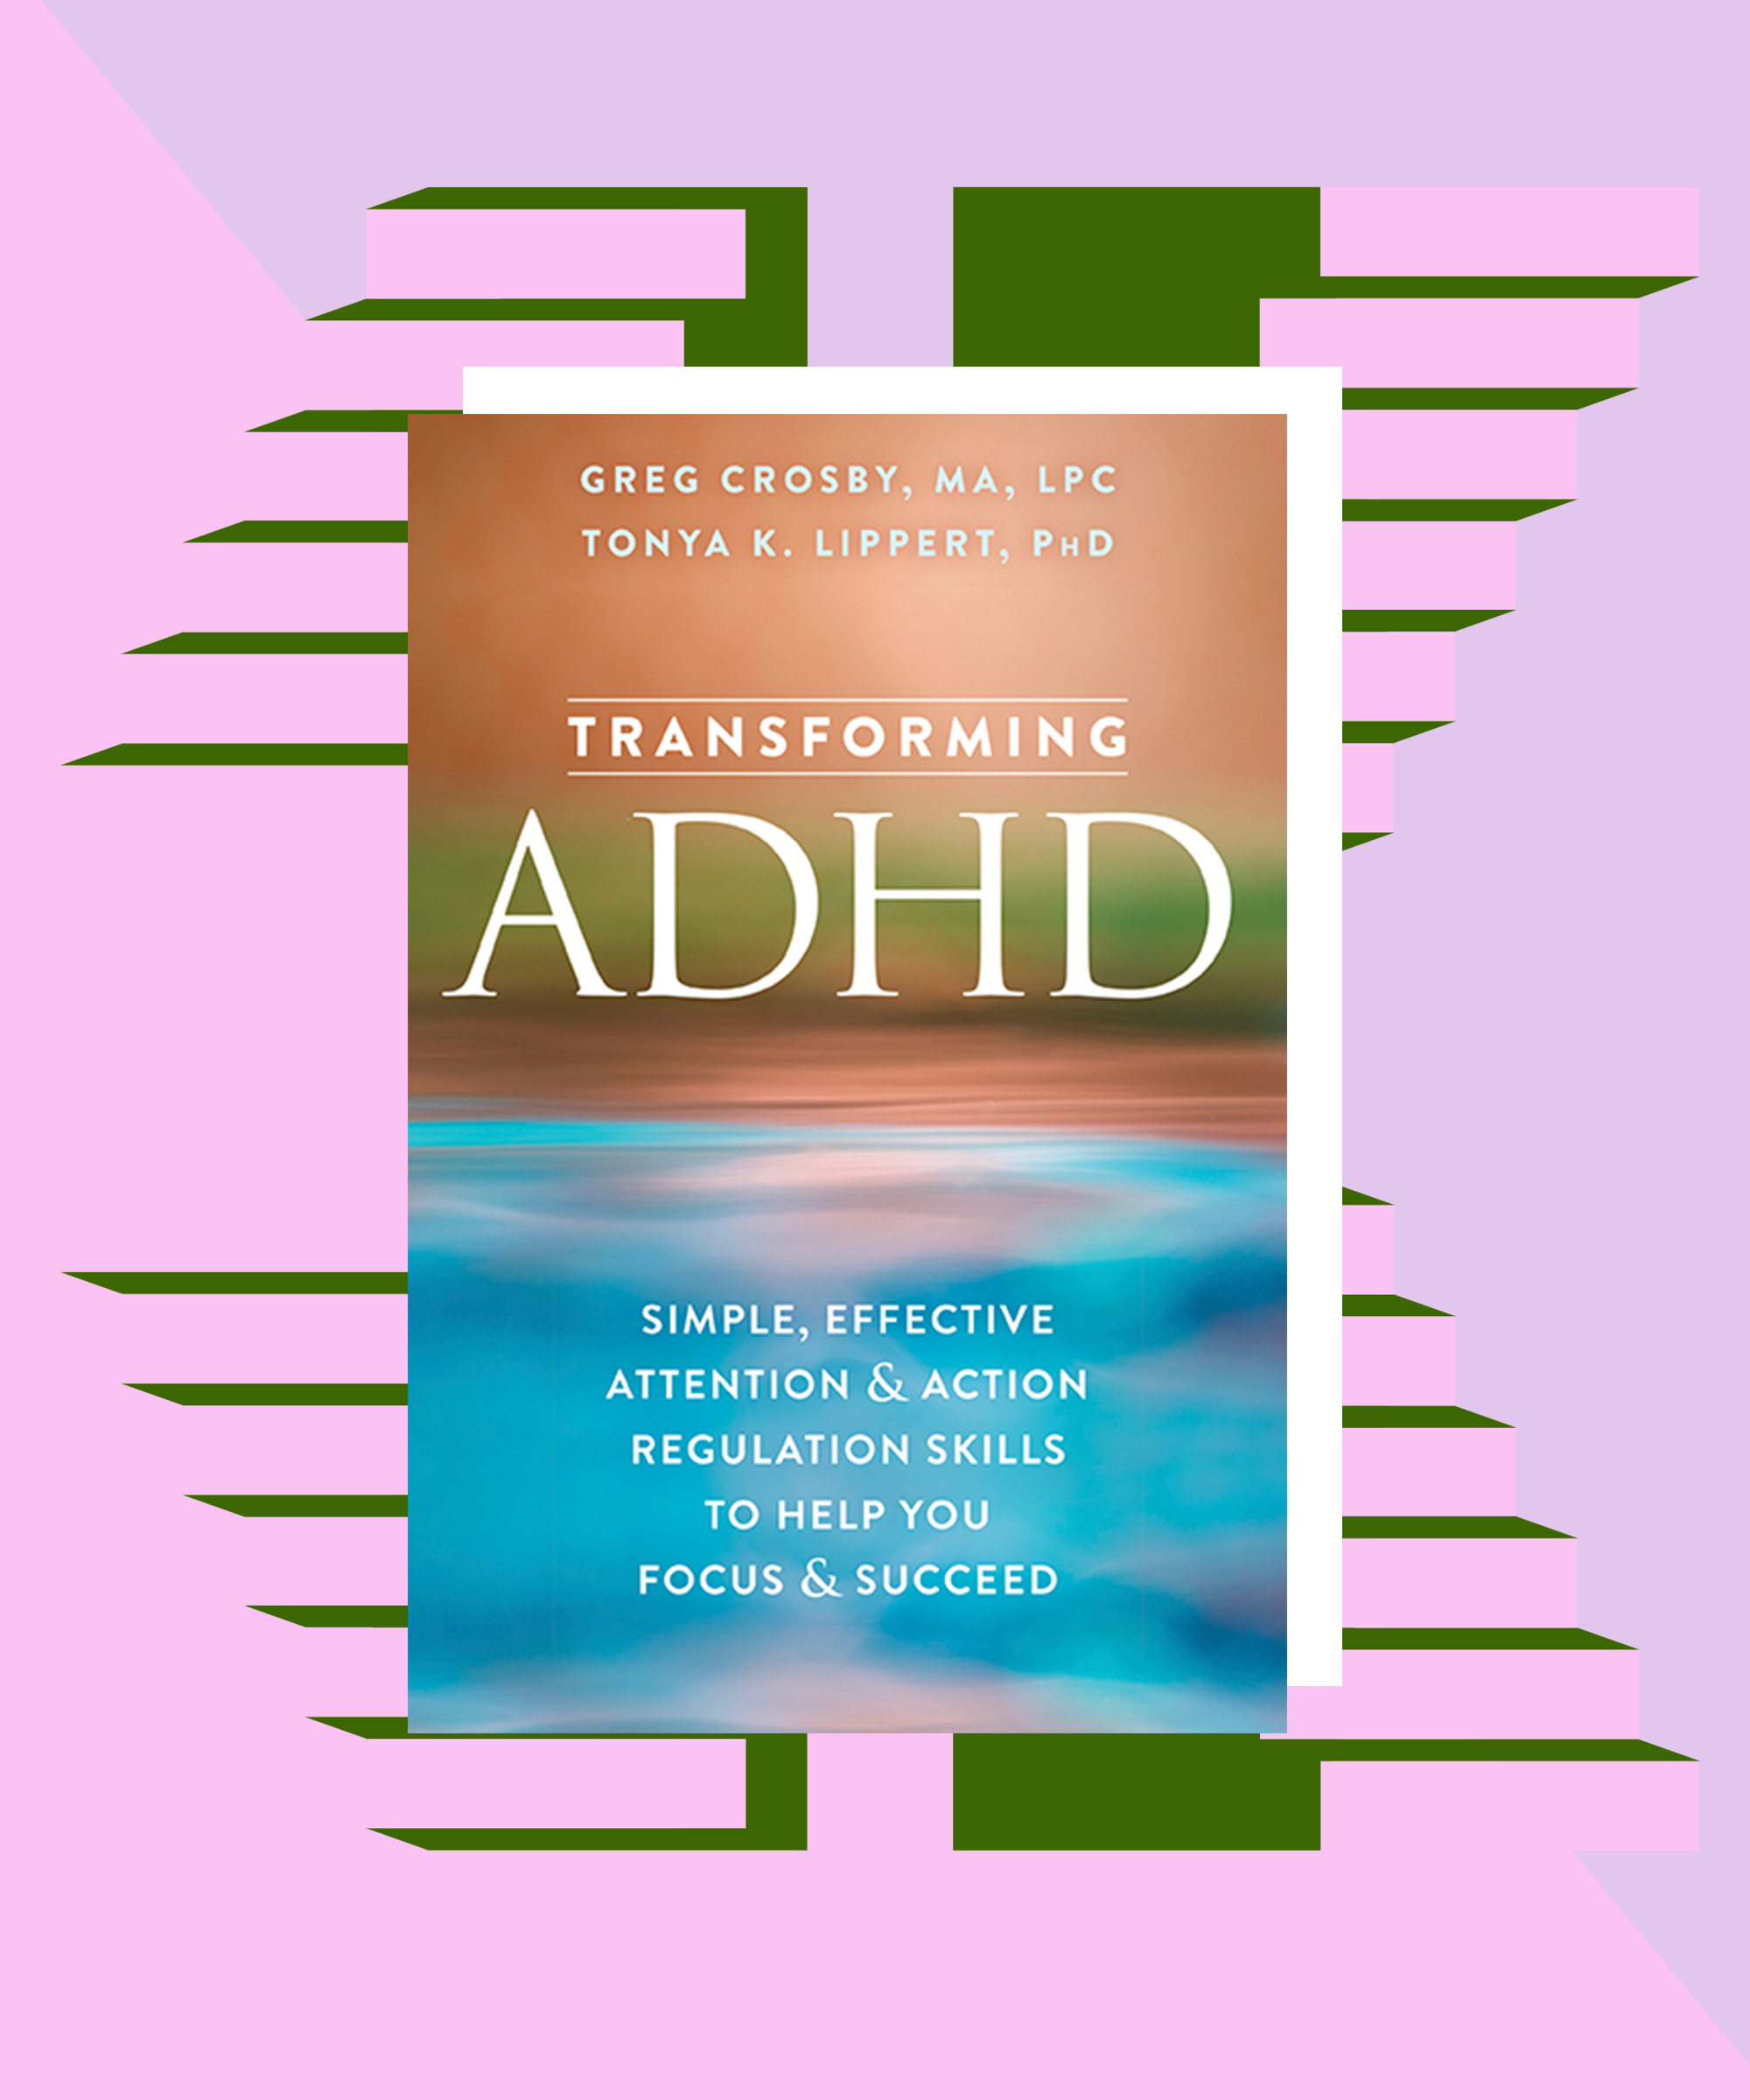 5 Tips For Dealing With Adult ADHD